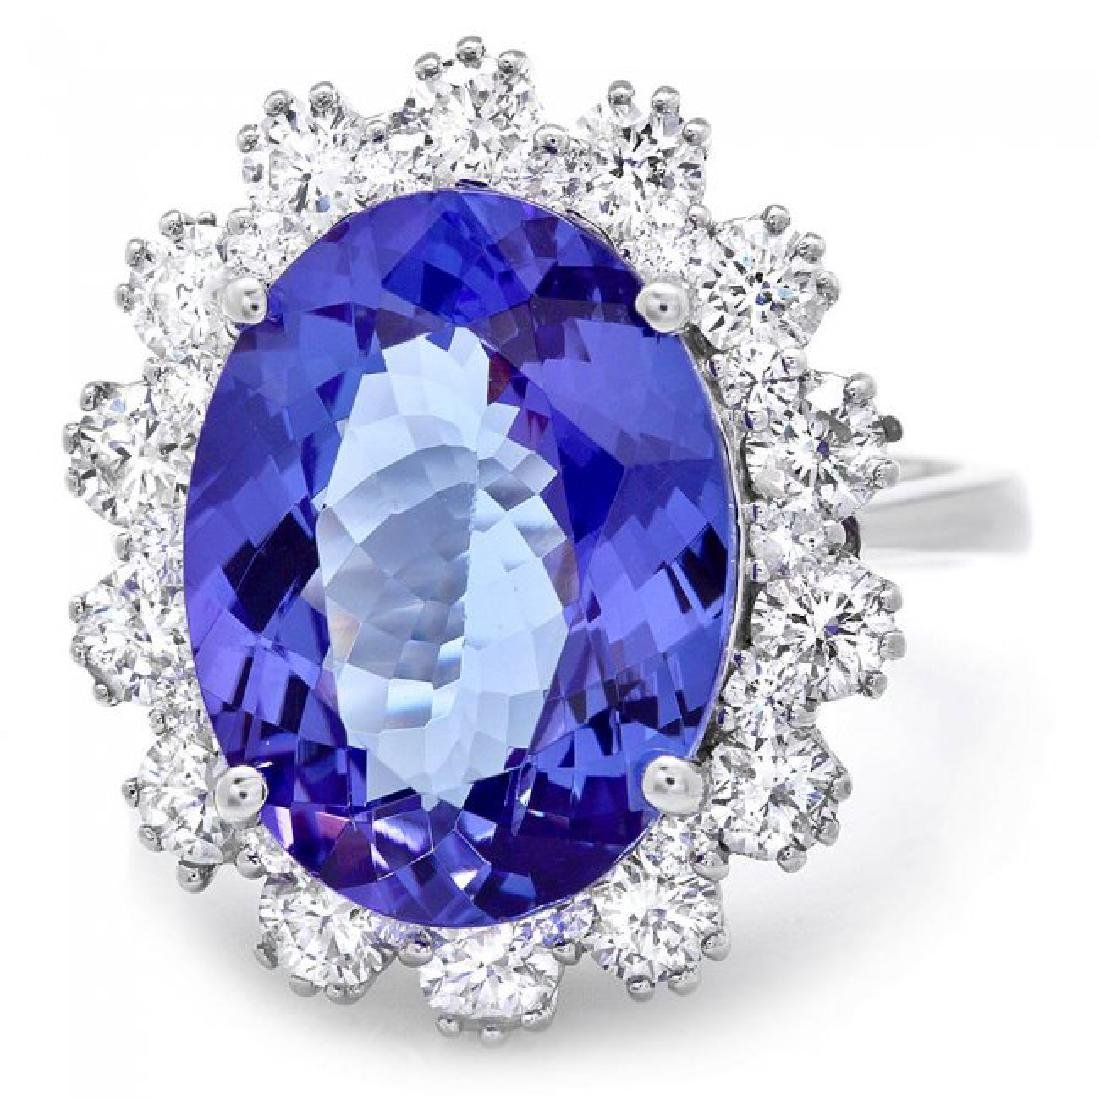 14k Gold 8.00ct Tanzanite 1.90ct Diamond Ring - 2